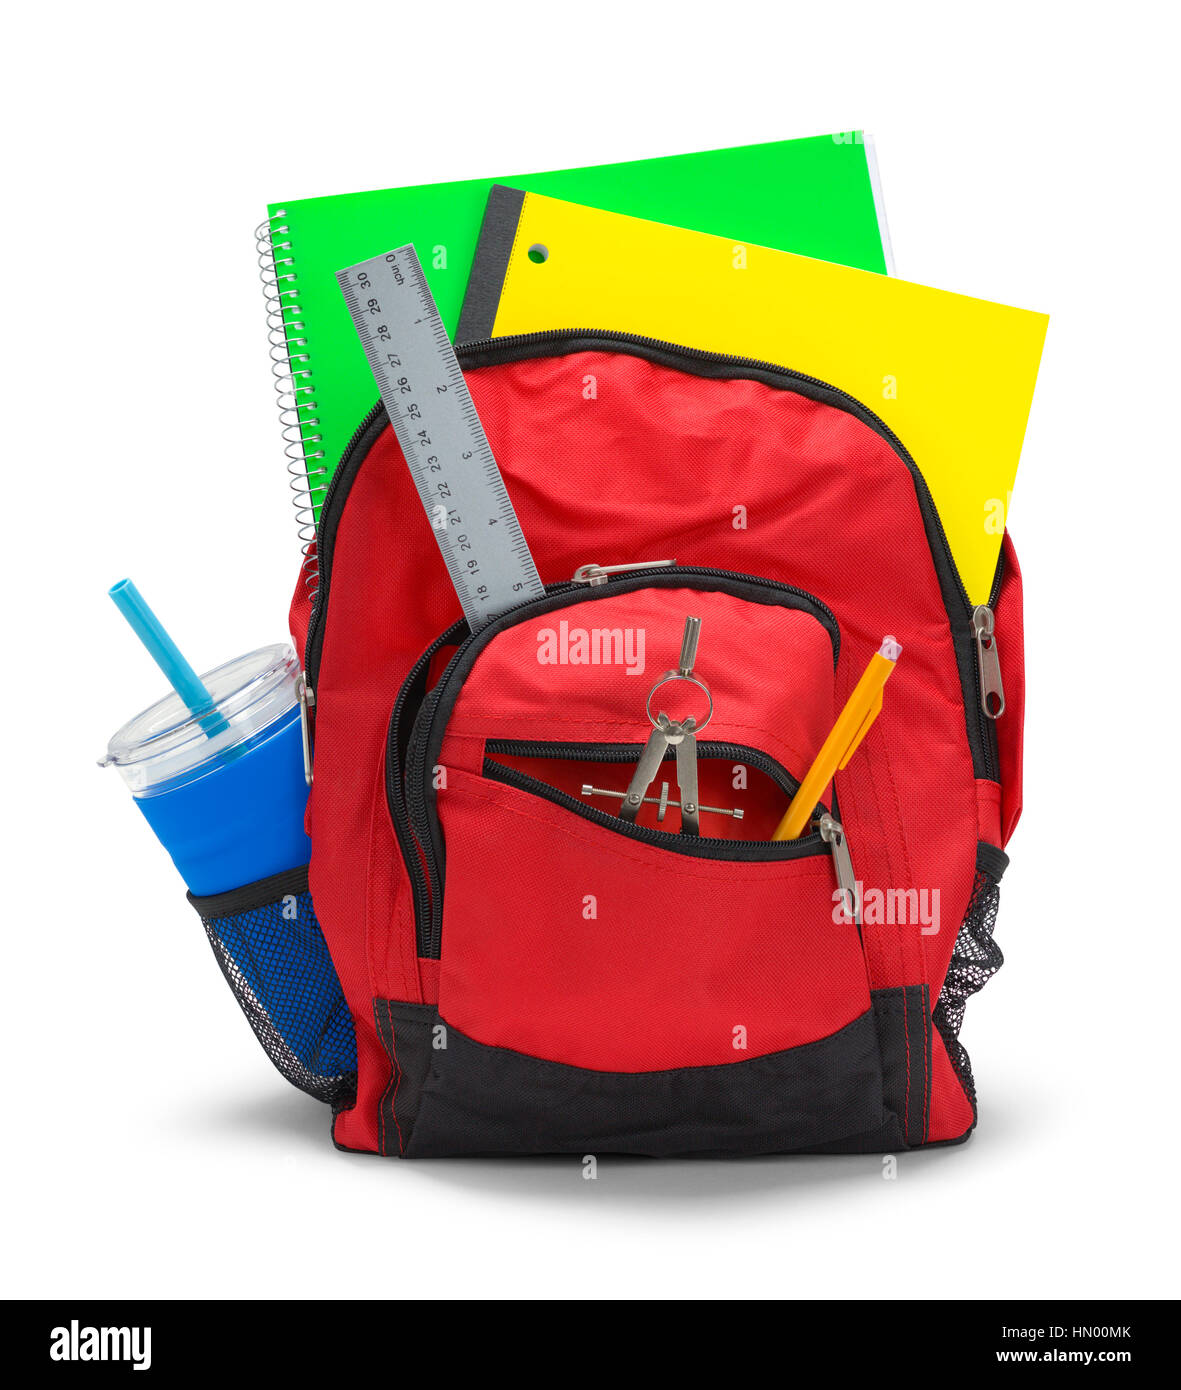 Red Backpack with School Supplies Isolated on White Background. - Stock Image